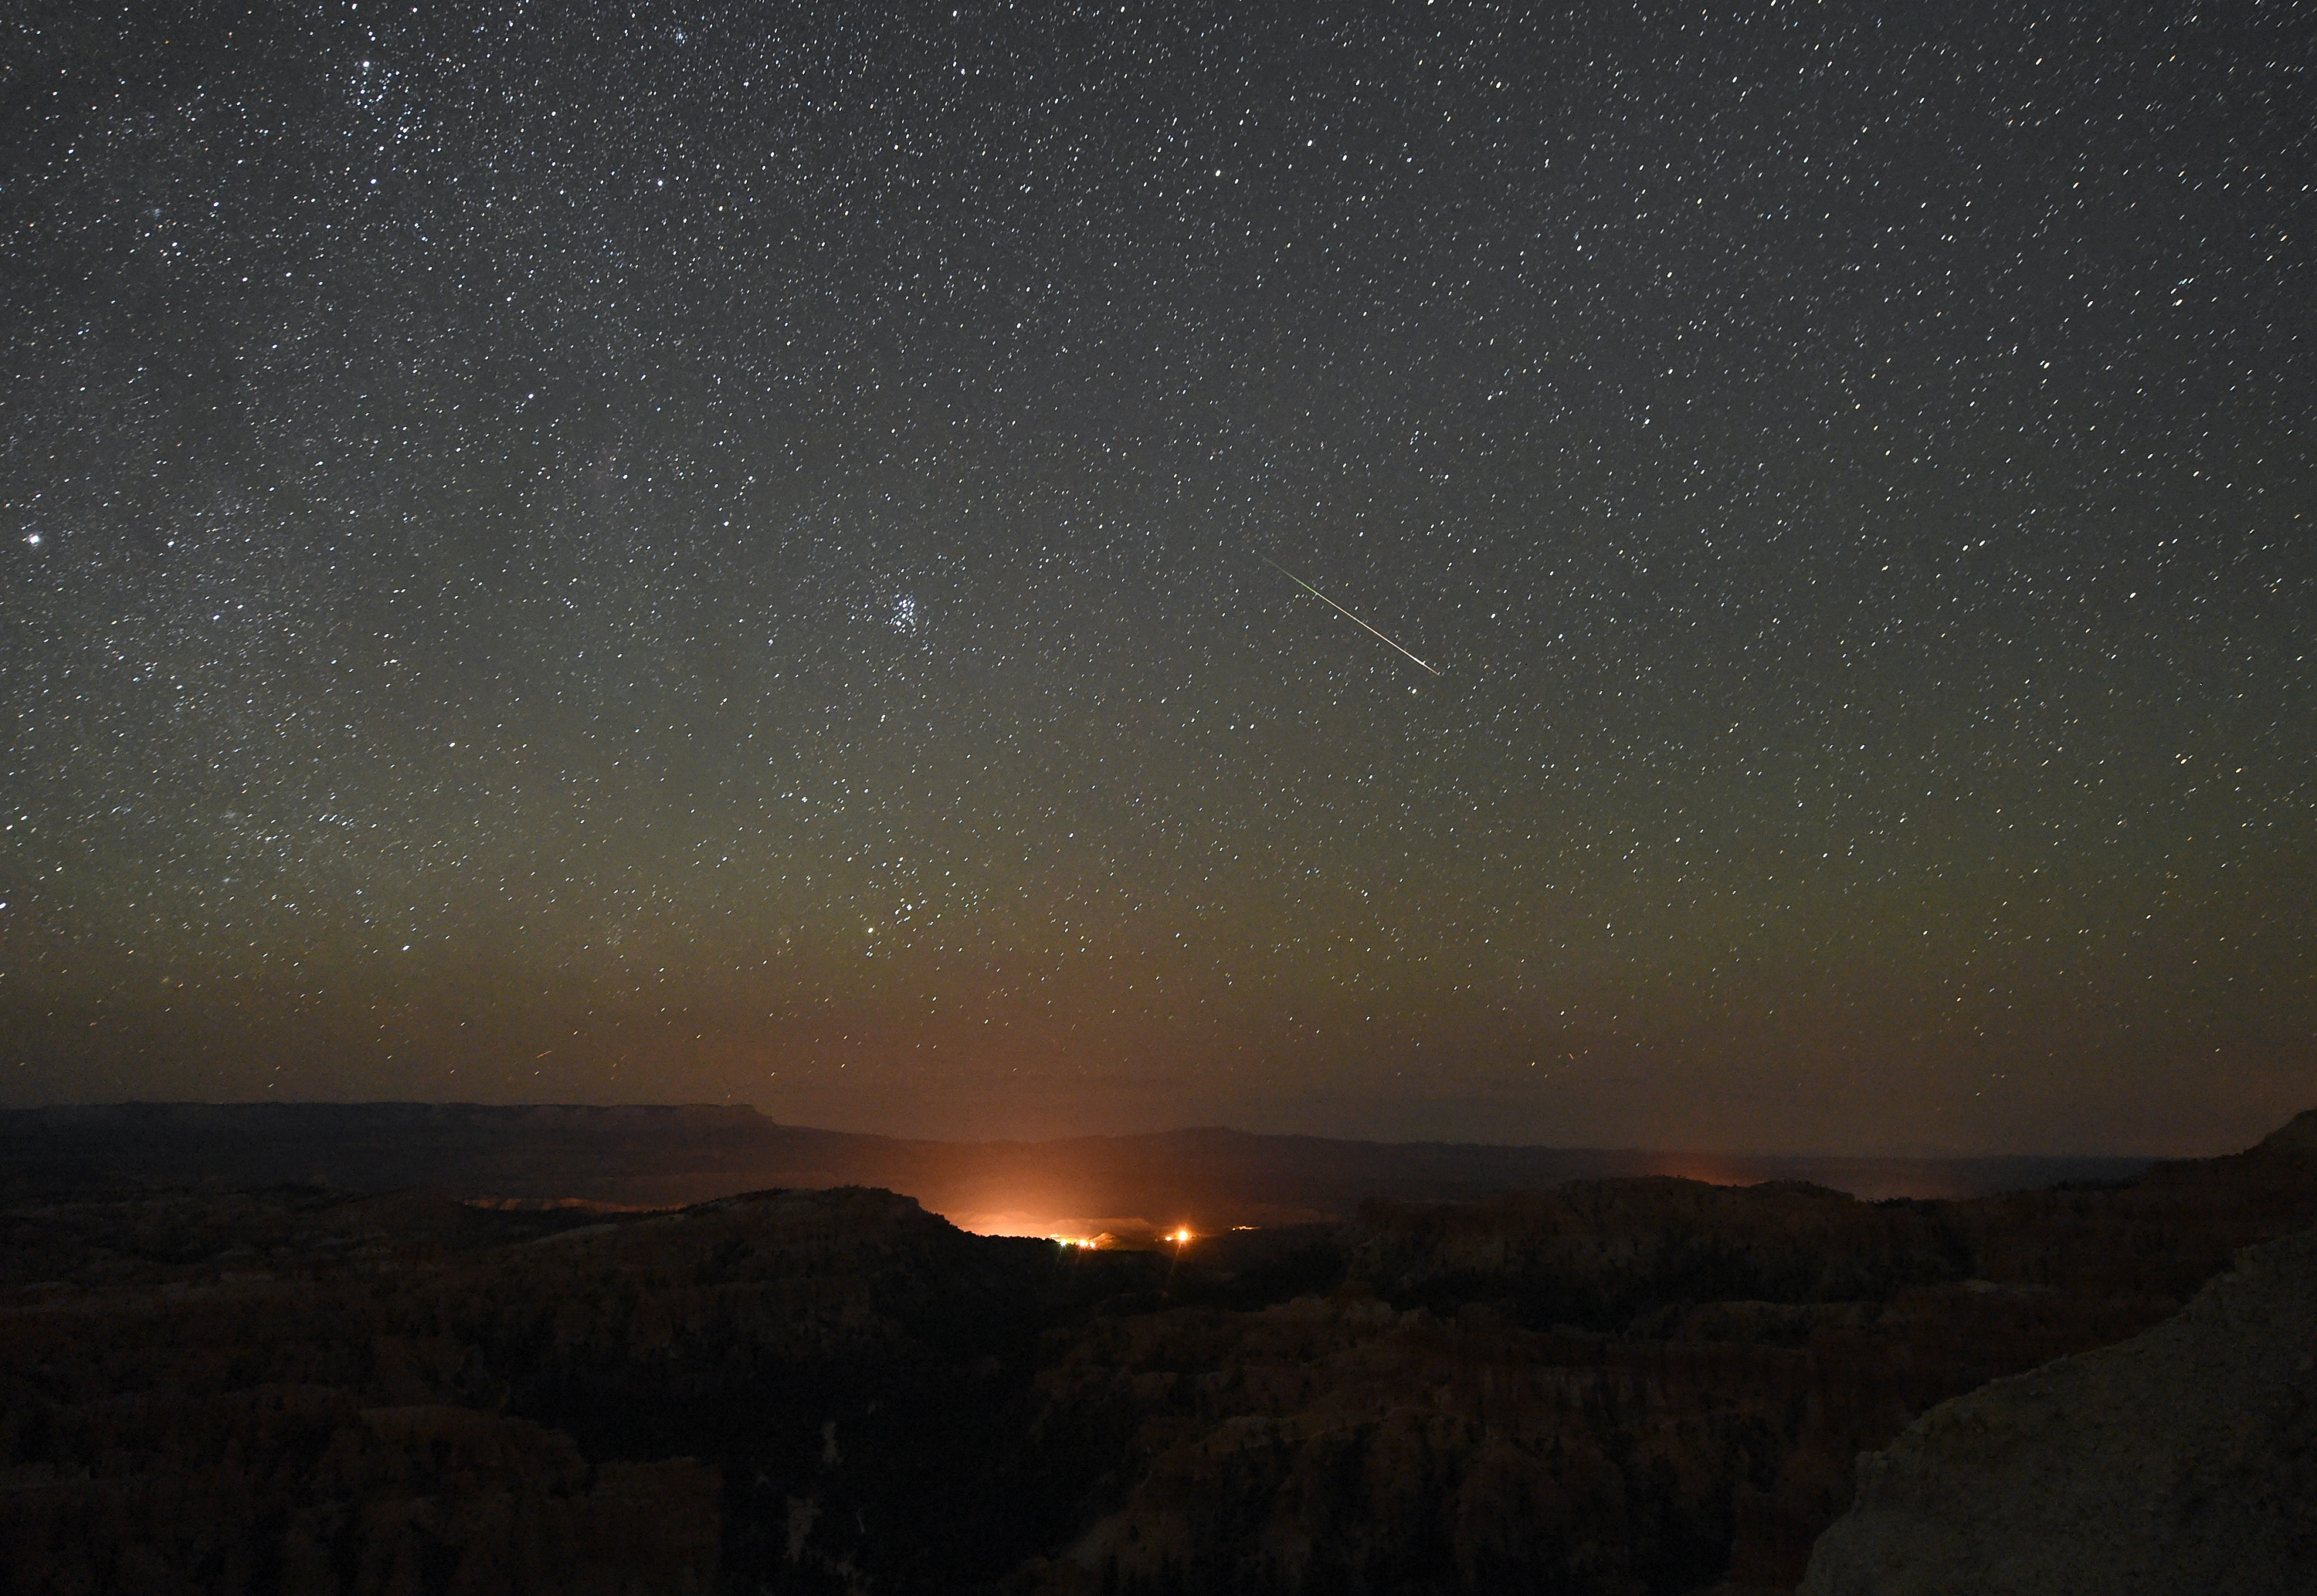 Double meteor showers will light up the night sky tonight